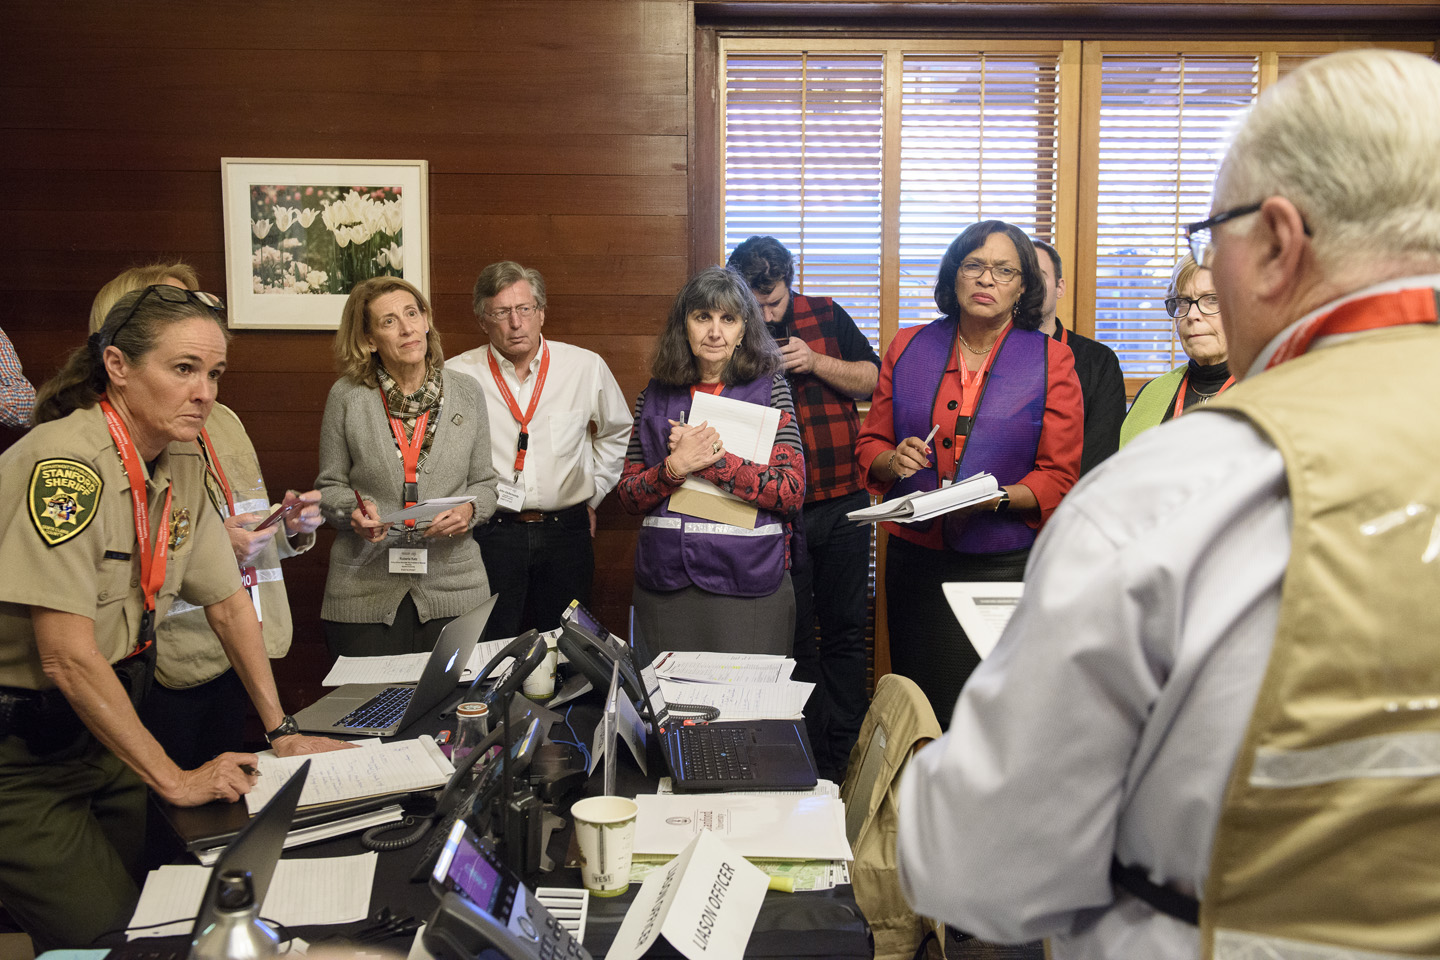 Participants in the Emergency Operations Center listen to Associate Vice Provost for Environmental Health and Safety Larry Gibbs, right, as the exercise moves to a close.